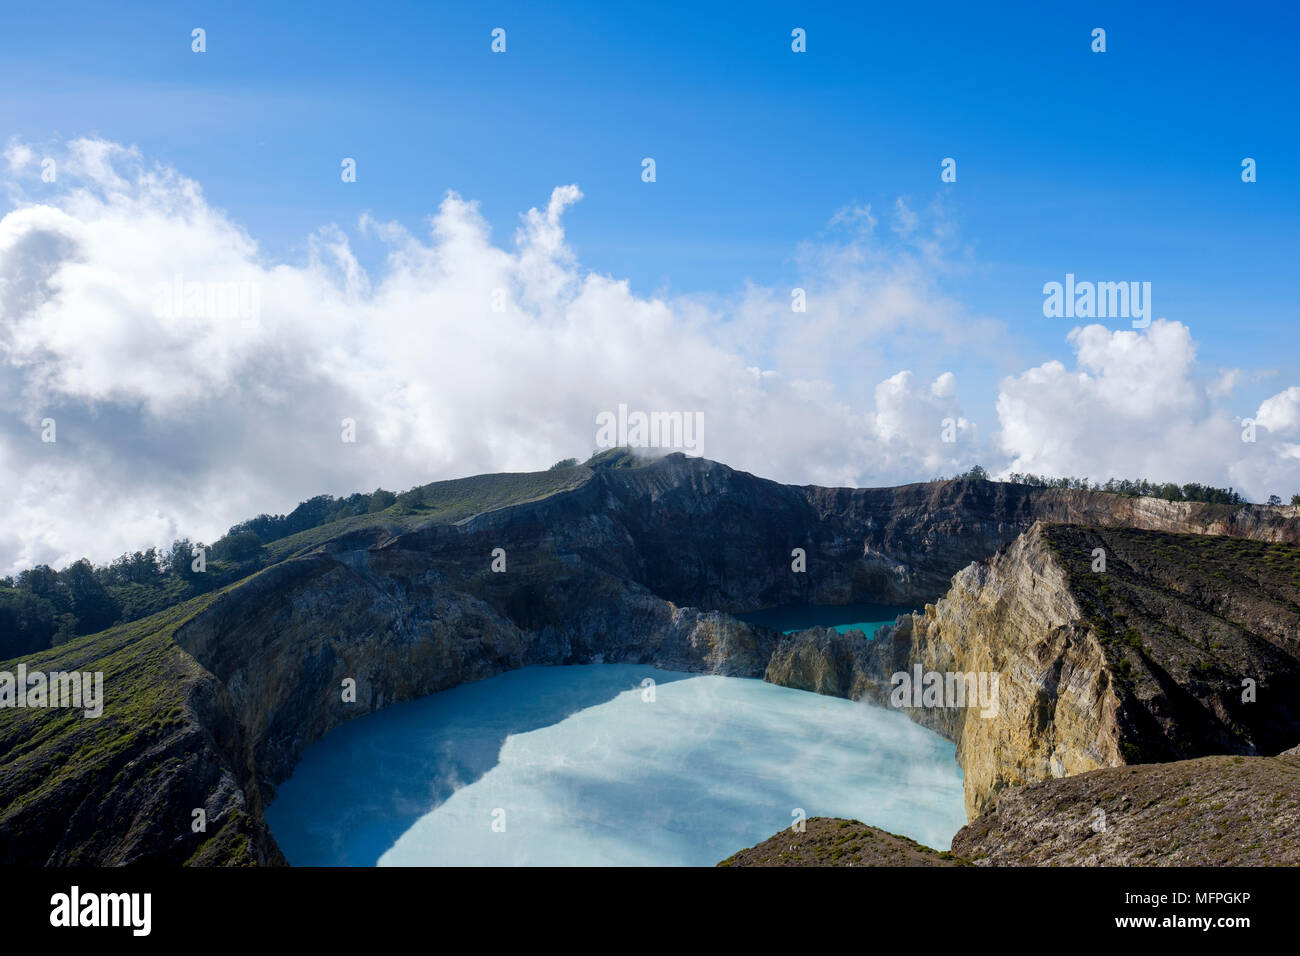 The two turquoise-coloured, eastern crater lakes at Kelimutu National Park, Ende Regency, Flores Island, Indonesia. - Stock Image